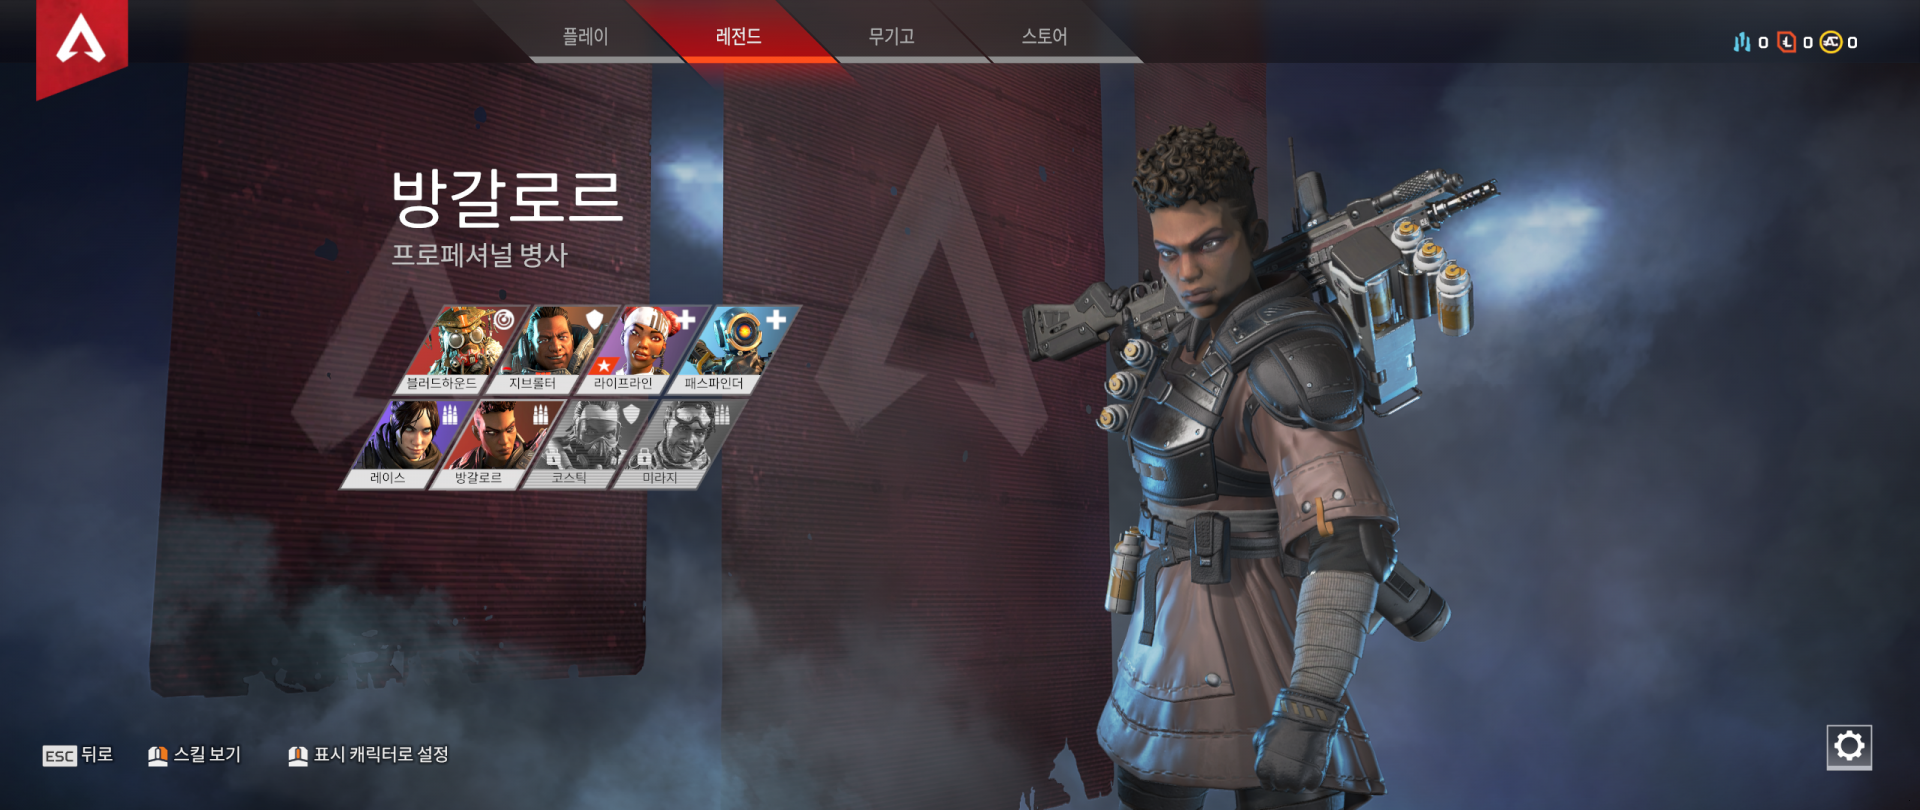 Apex Screenshot 2019.02.05 - 06.26.25.00.png